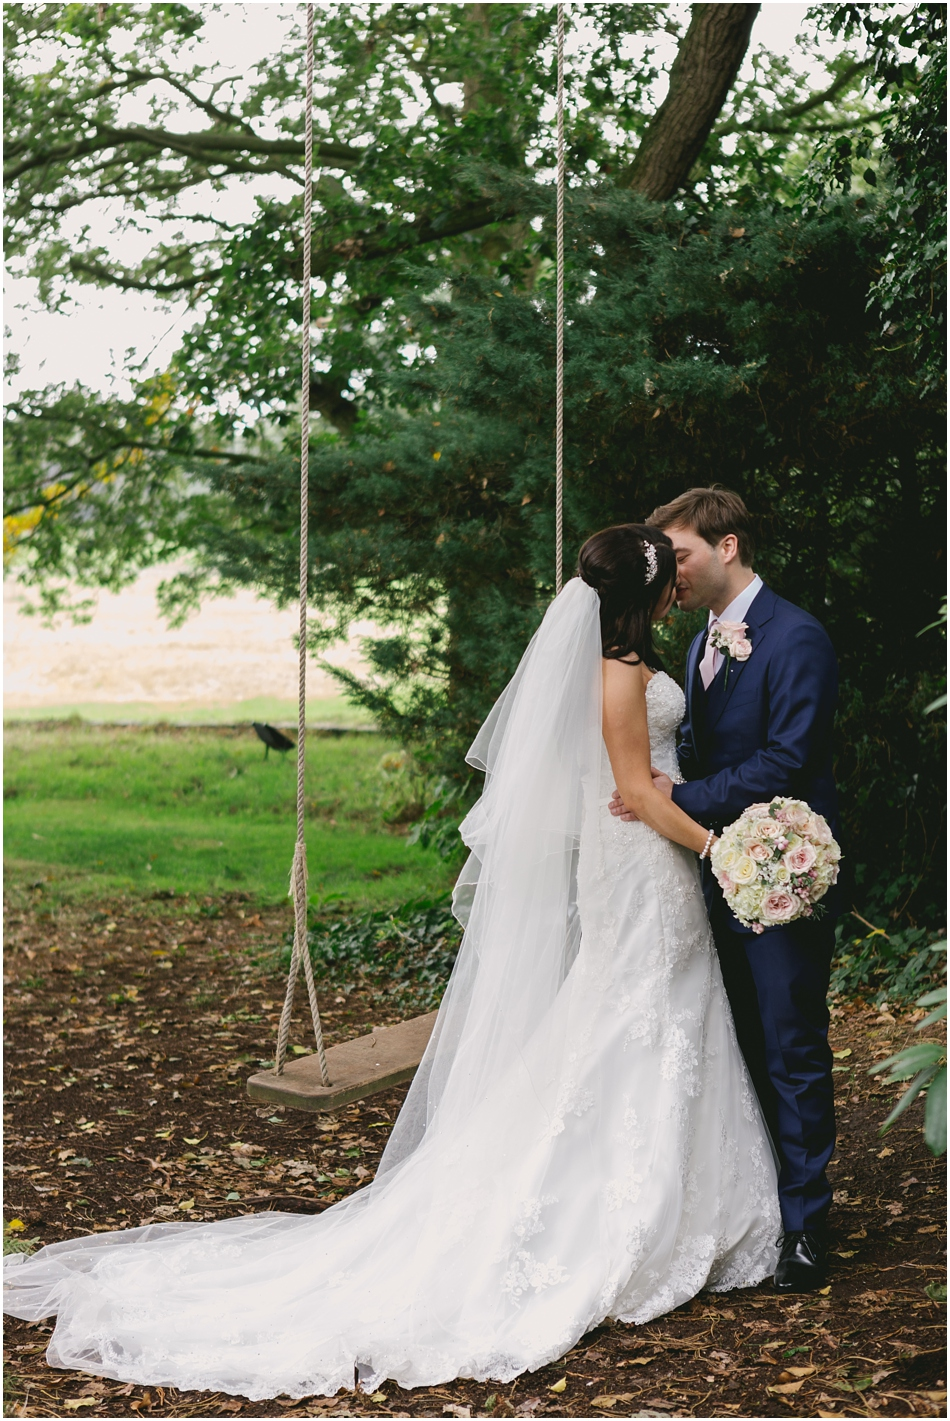 Romantic Iscoyd Park wedding; portrait of Bride and Groom kissing by the swing on their wedding day